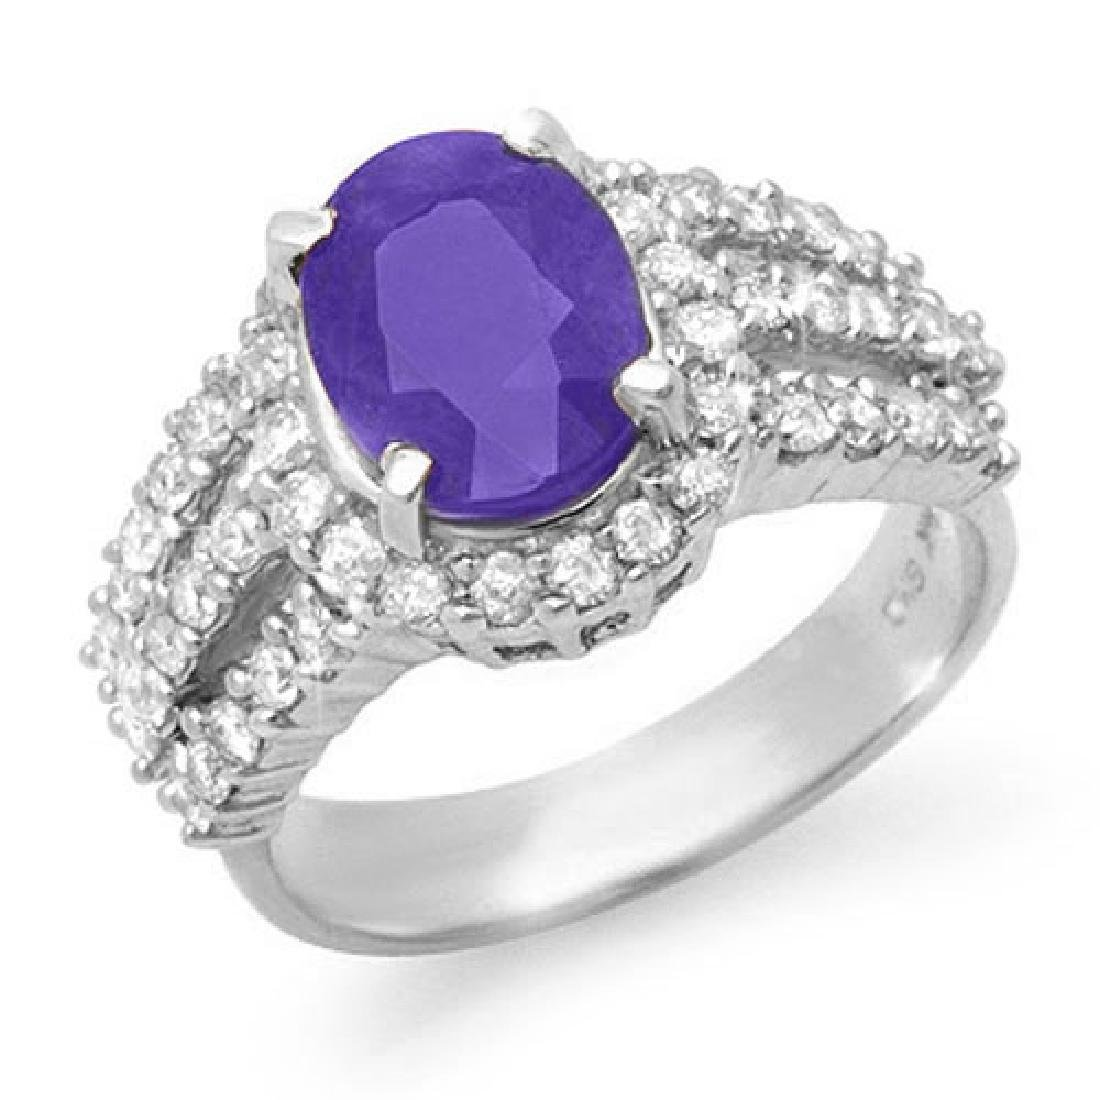 4.70 CTW Tanzanite & Diamond Ring 18K White Gold